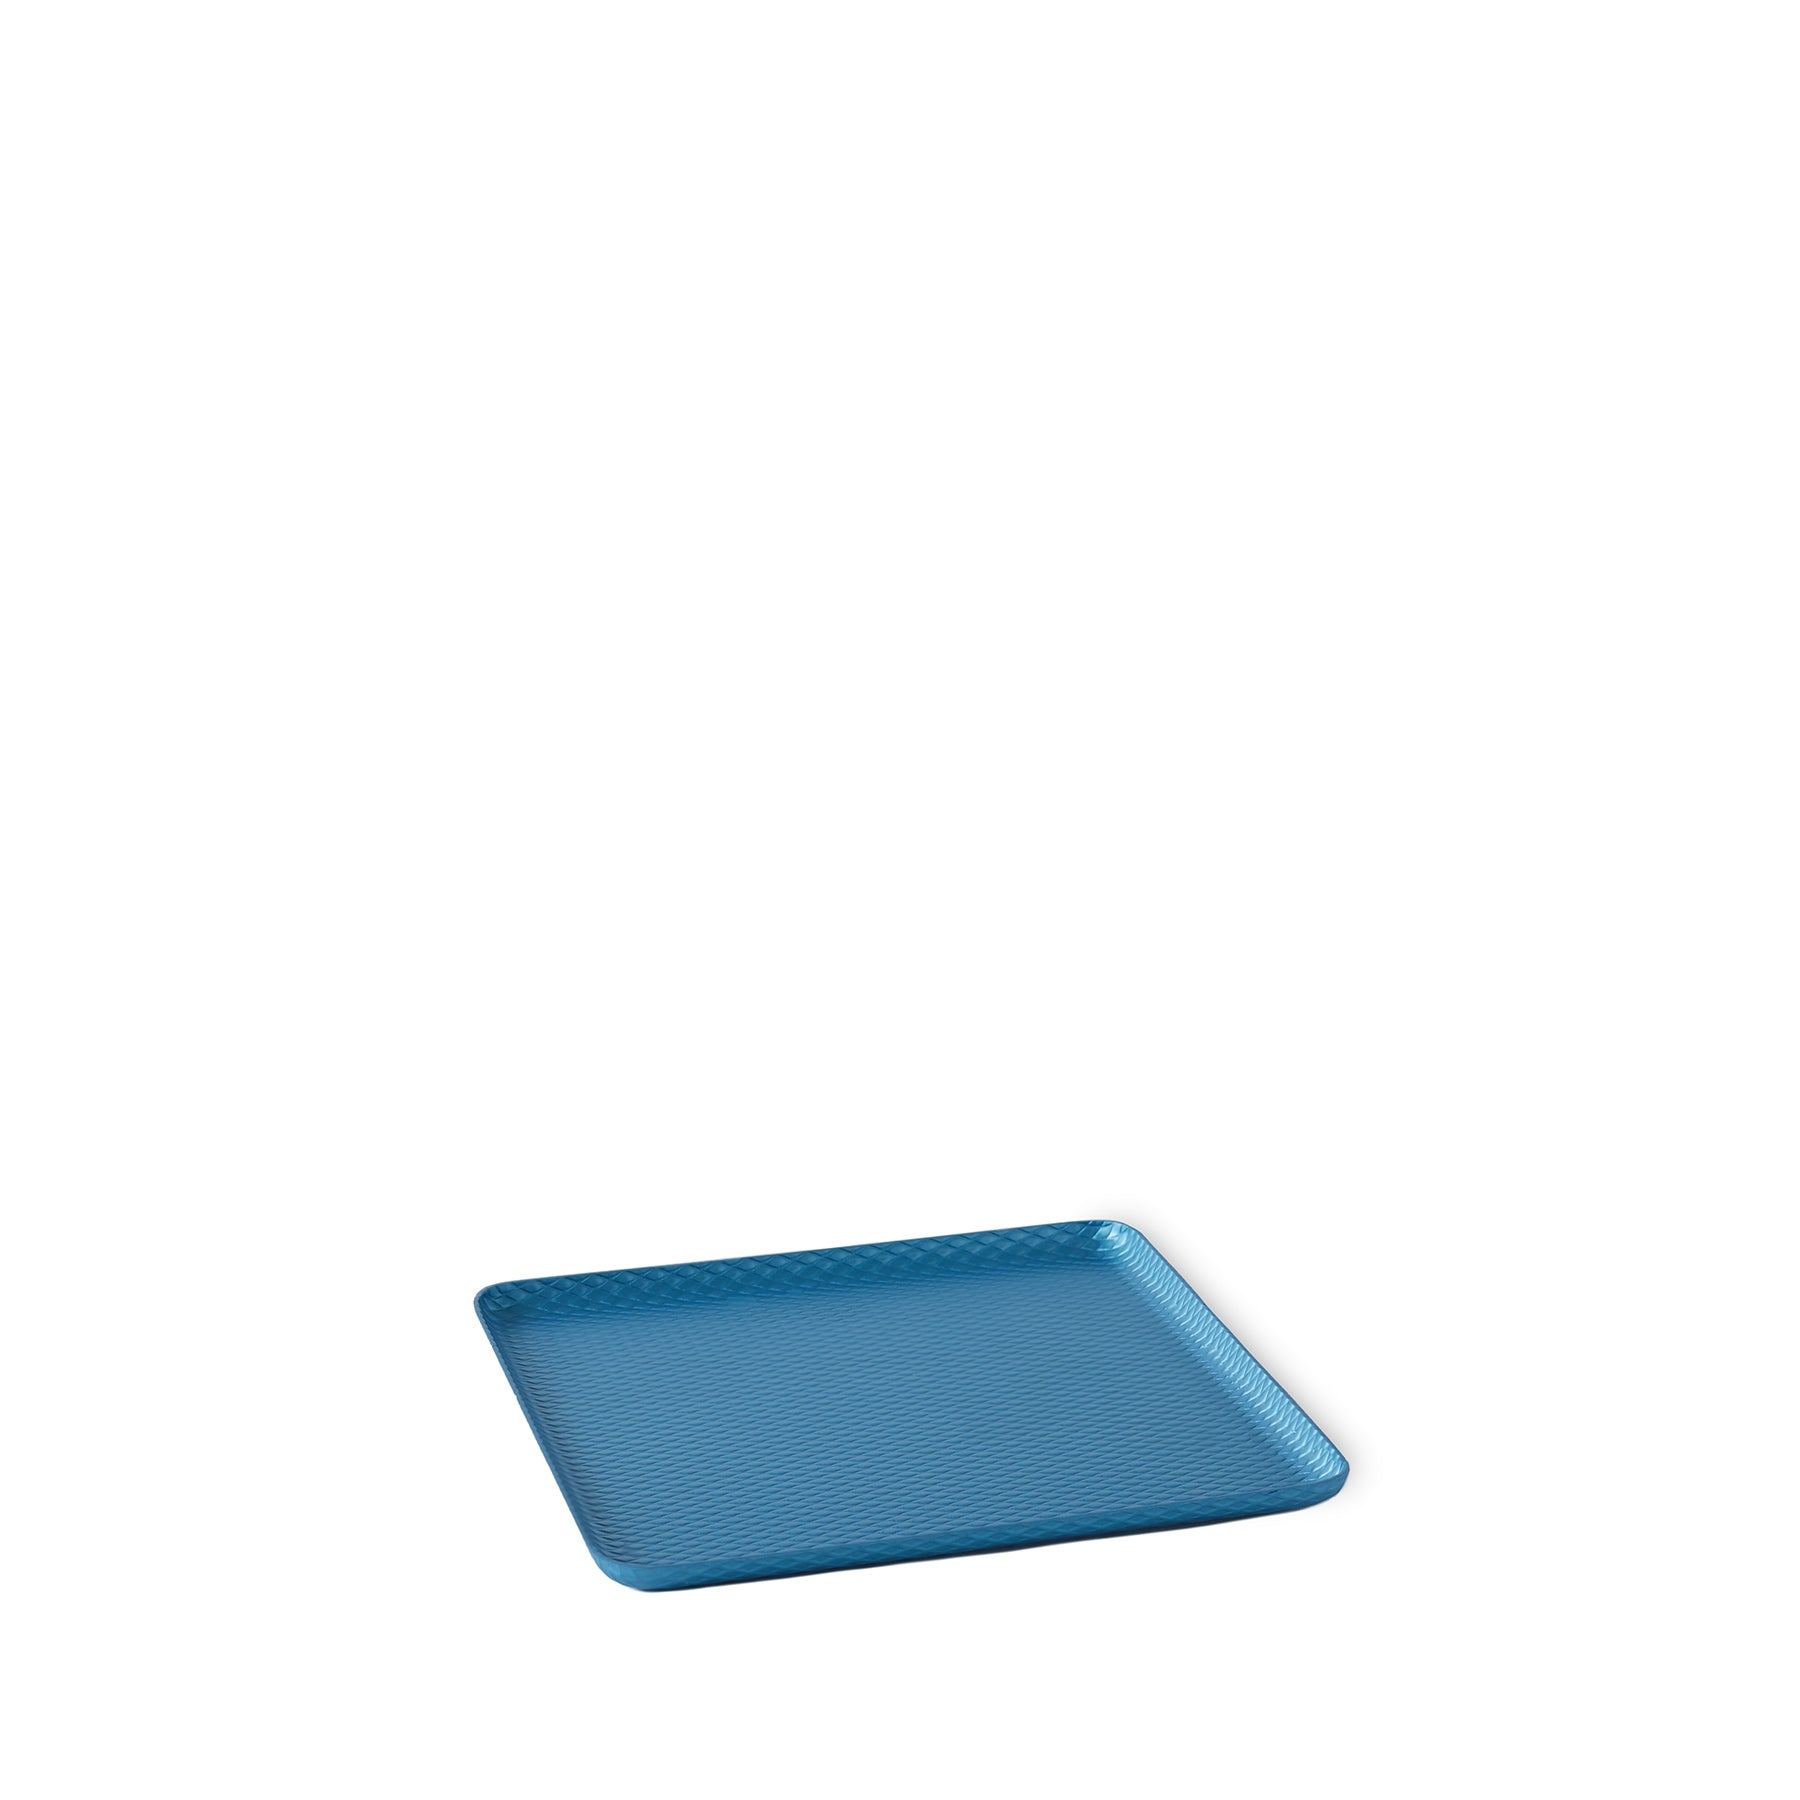 Diamond Pressed Tray in Sky Blue Zoom Image 1